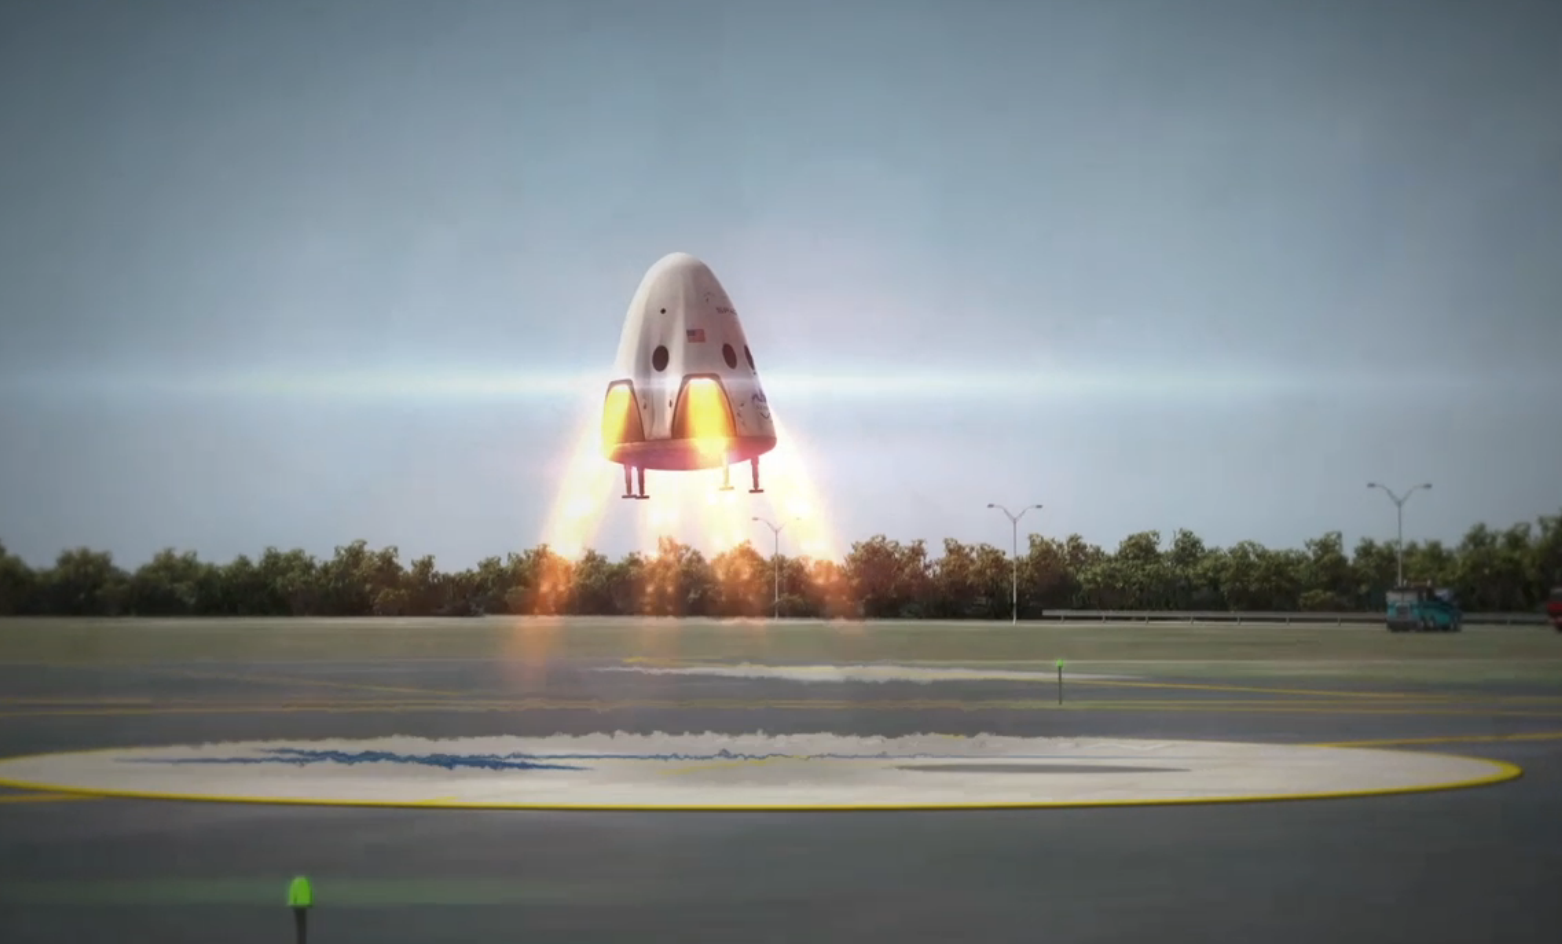 A rendering of the Dragon V2 landing with its new type of thrusters.